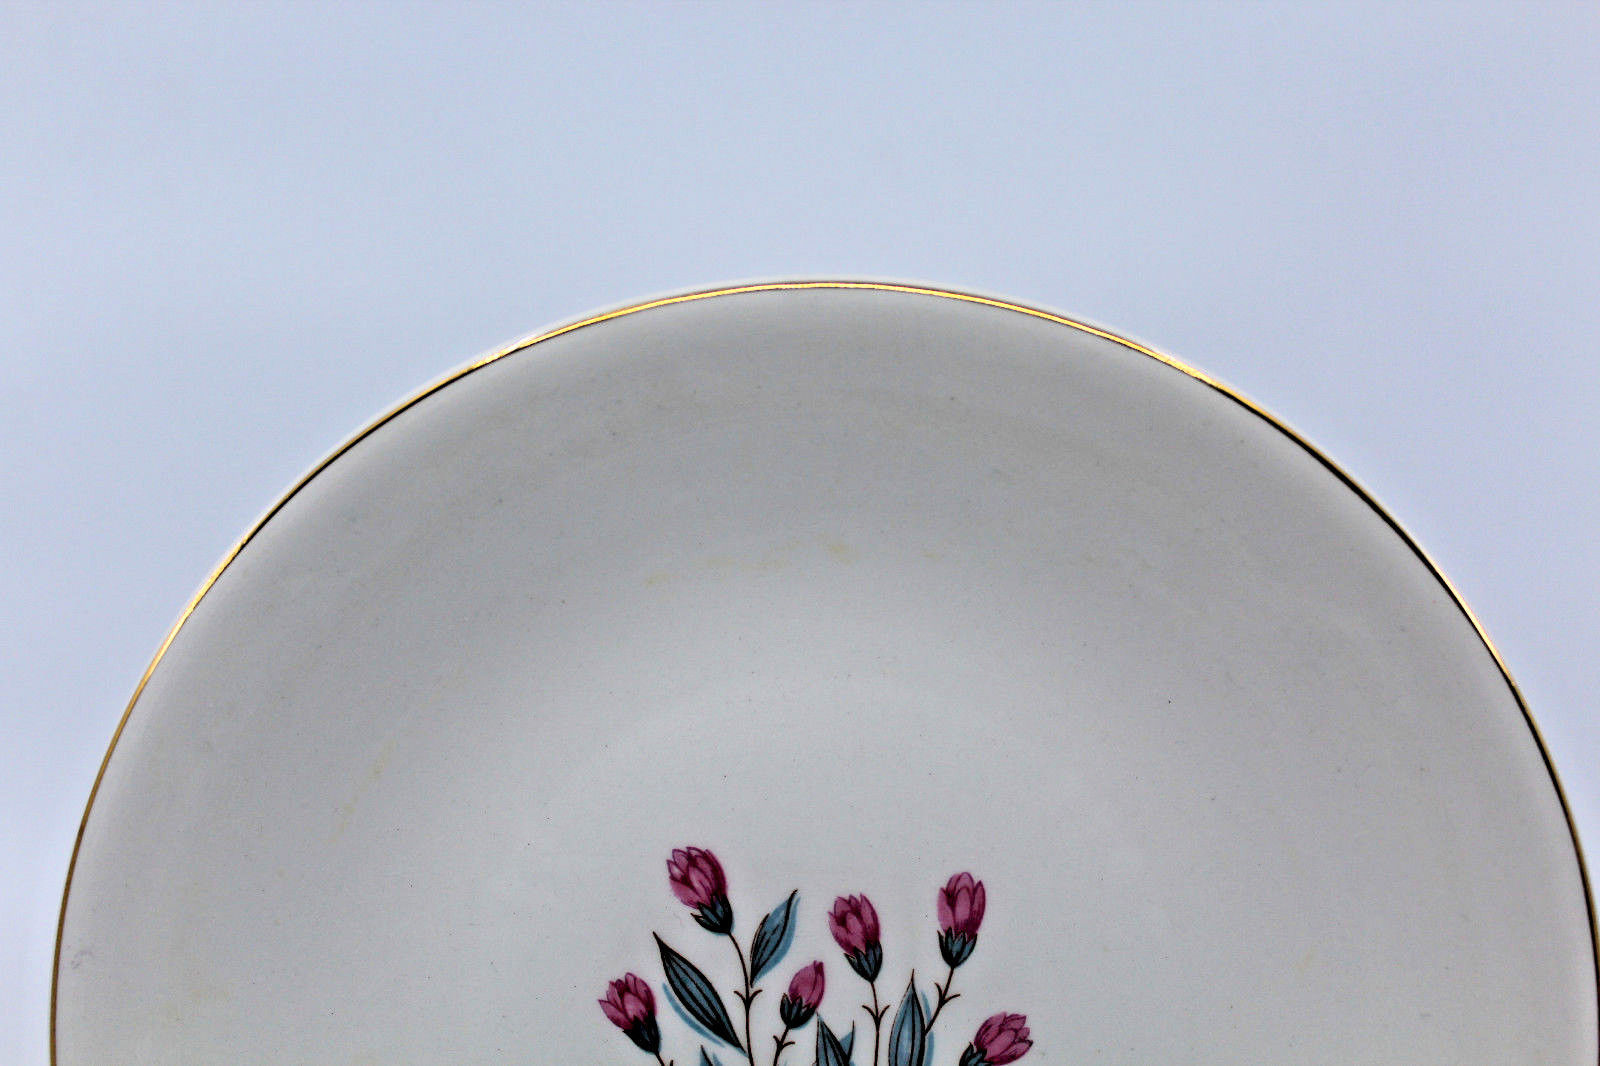 Enoch wedgwood tunstall ltd Bread and Butter Side Plate Pink Flower 17.5 cm image 5